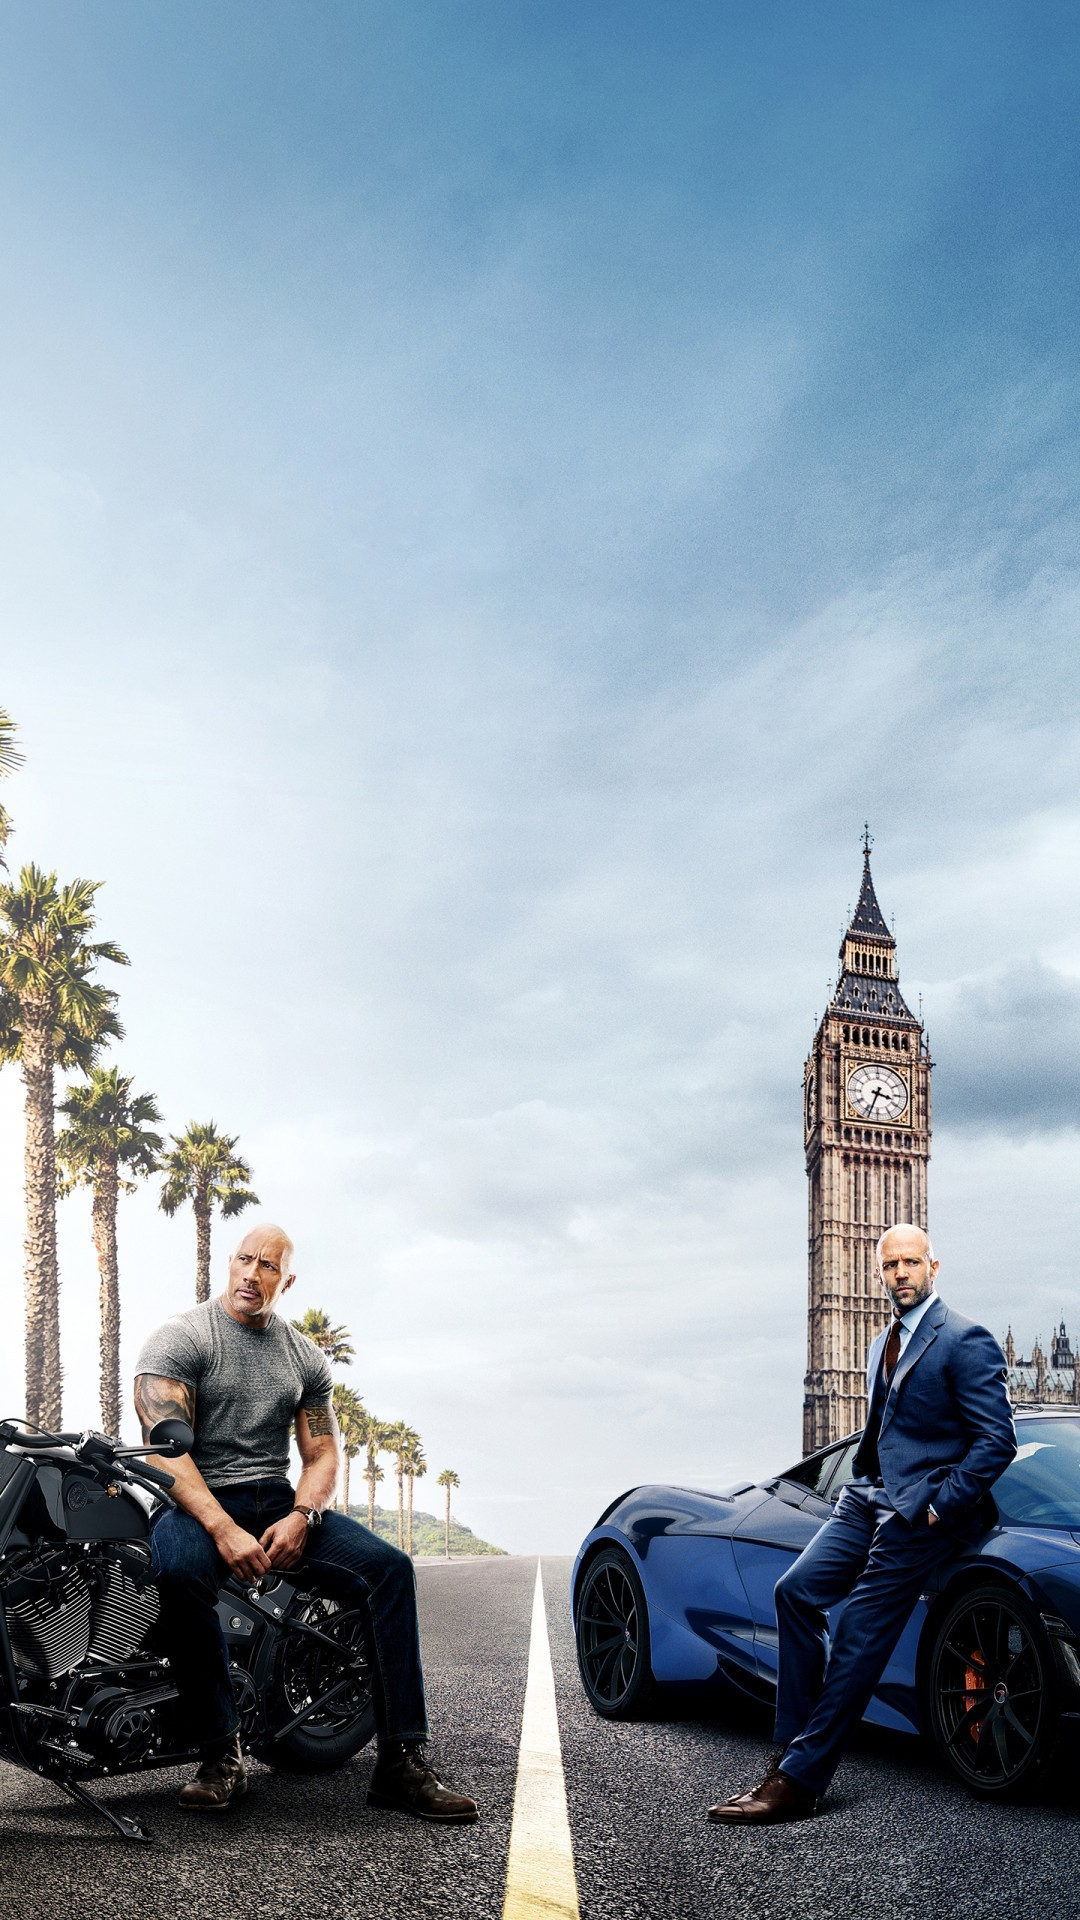 Free Fast & Furious Presents Hobbs & Shaw phone wallpaper by lilwill23